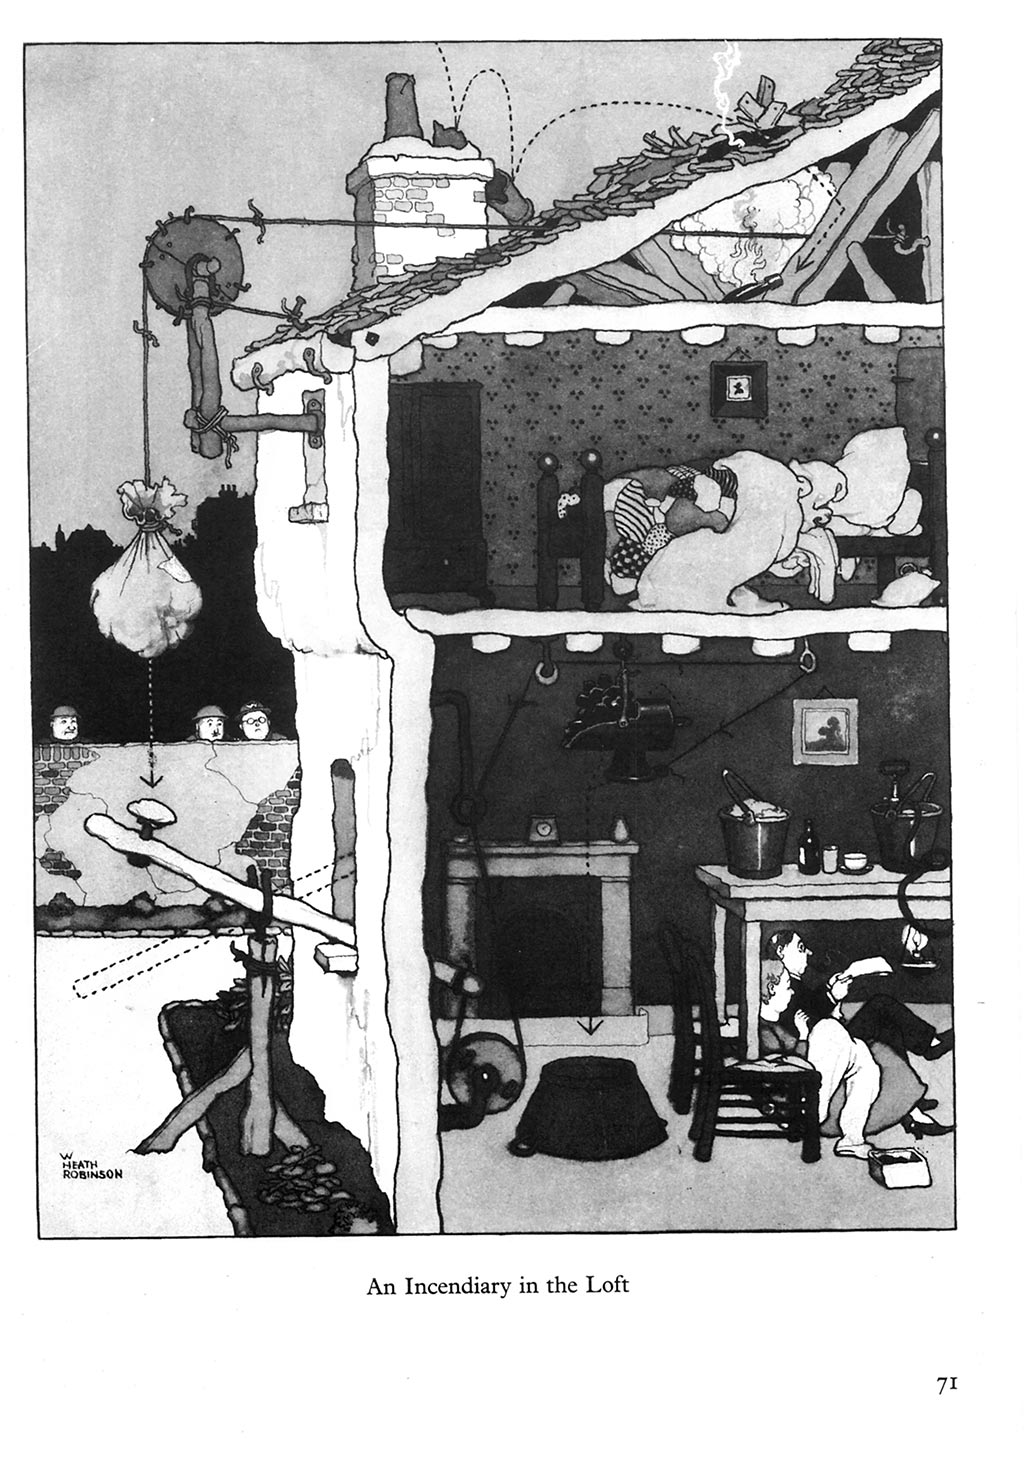 william_heath_robinson_inventions_-_page_071